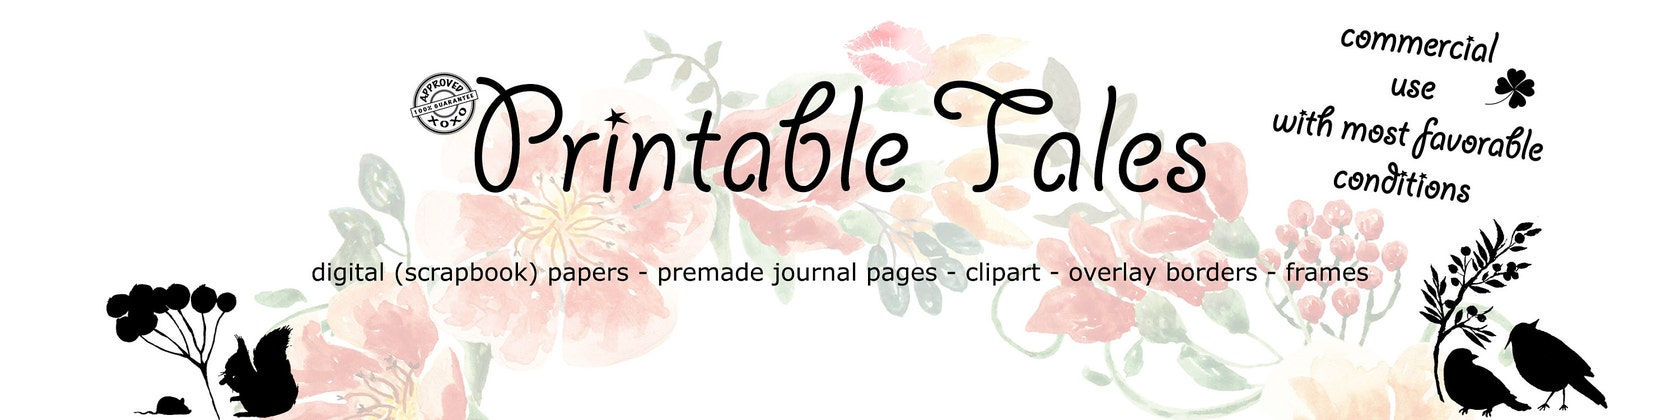 Commercial Use Digital Papers Clip Art von PrintableTales auf Etsy